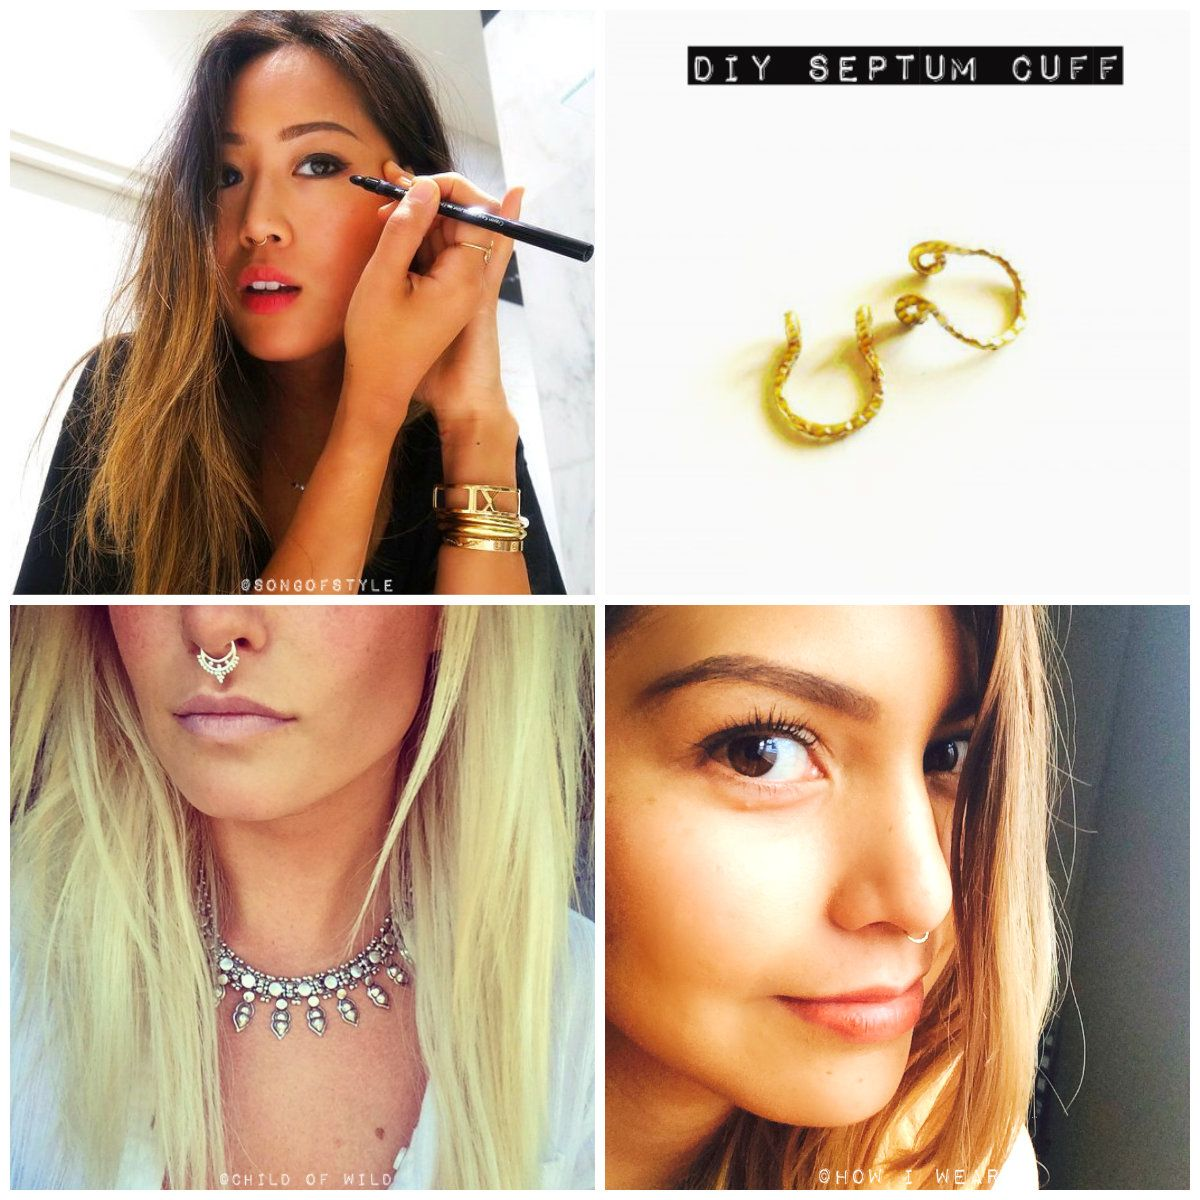 Diy gold septum cuff project ideas pinterest septum crafty diy gold septum cuff song of style inspired gold nose ring jewellery do it yourself maybe a preclude to a real one solutioingenieria Gallery